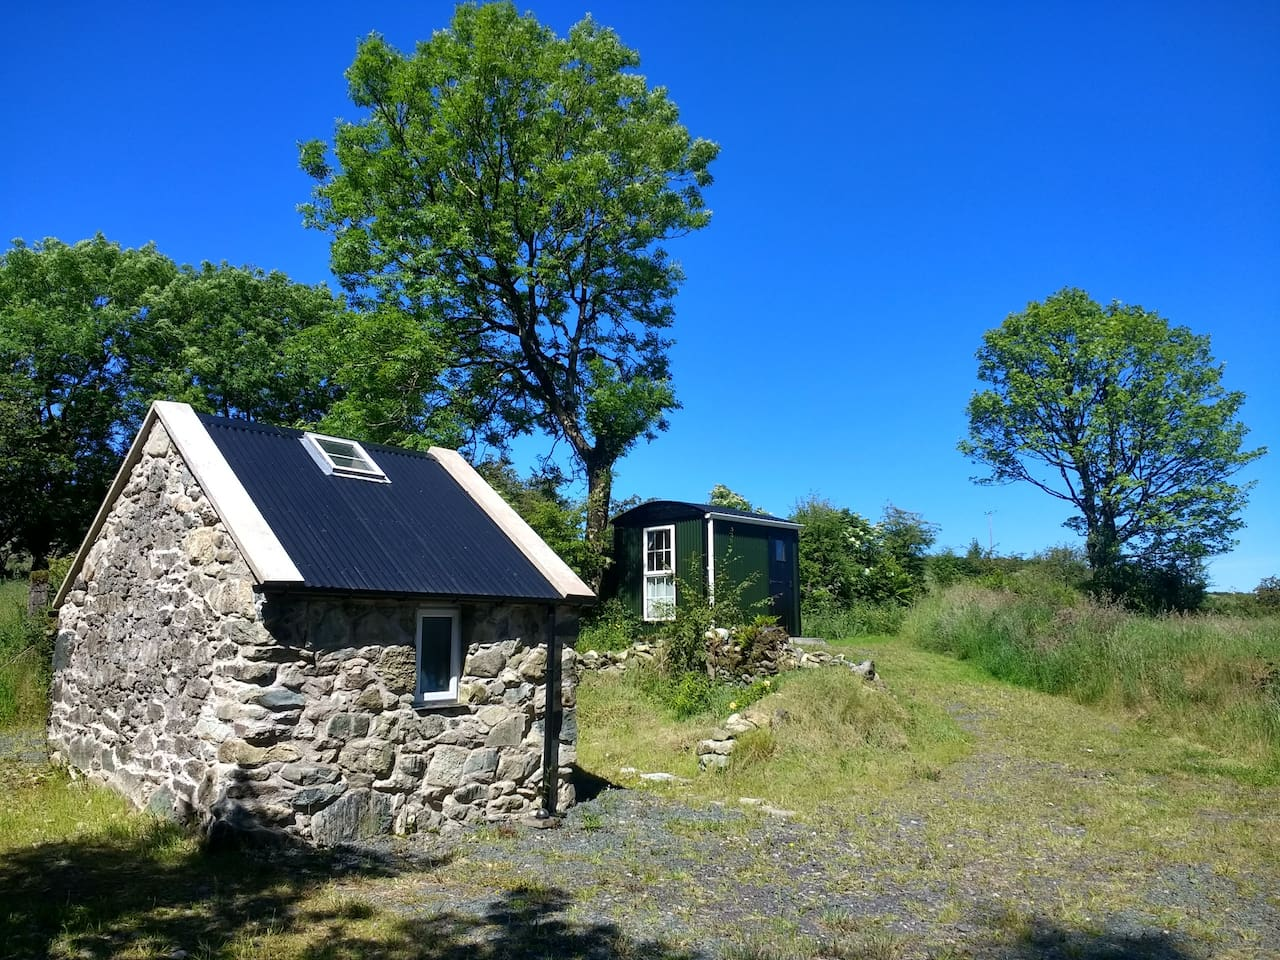 Shepherd's hut and stone building with shower and kitchen.